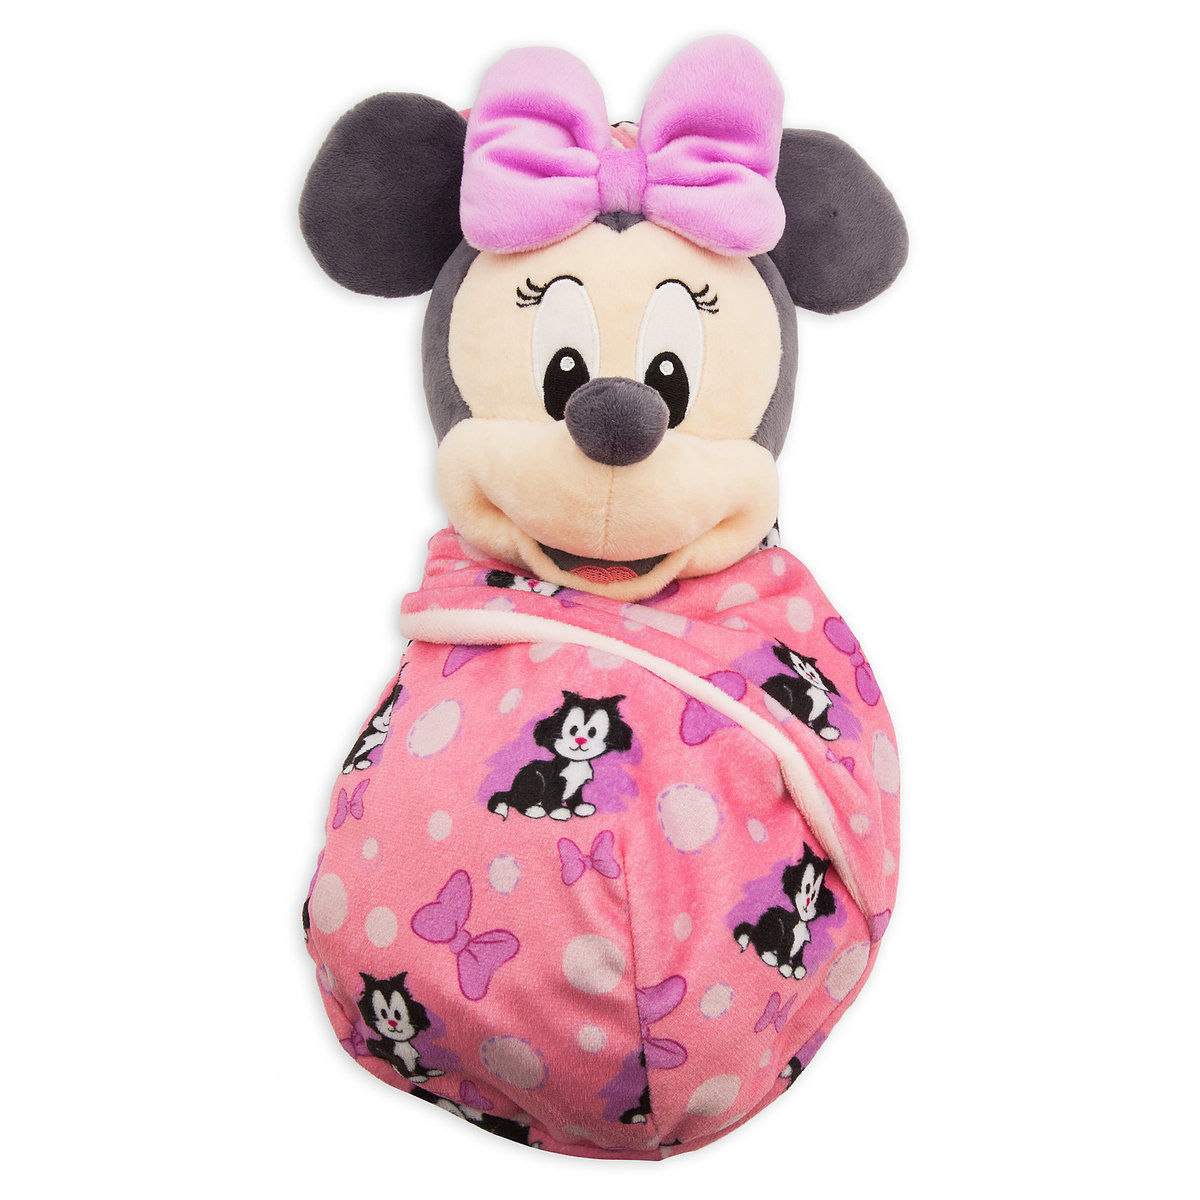 Disney Parks Baby Minnie in a Blanket Pouch Plush New with Tags